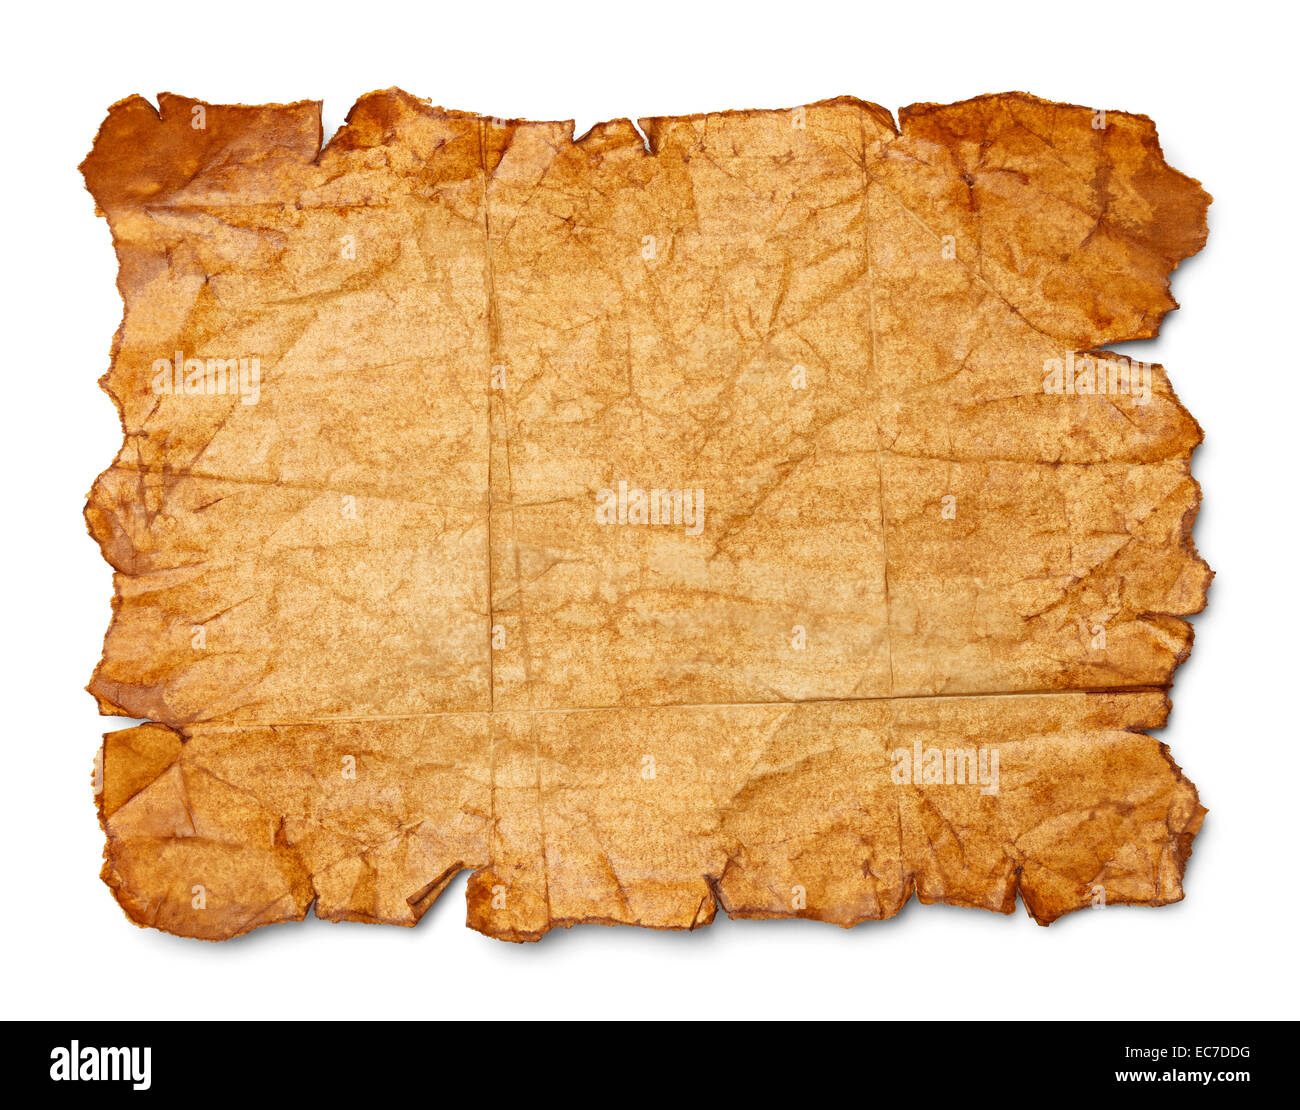 Worn Wrinkled and Ripped Old Brown Paper Isolated on White Background. - Stock Image